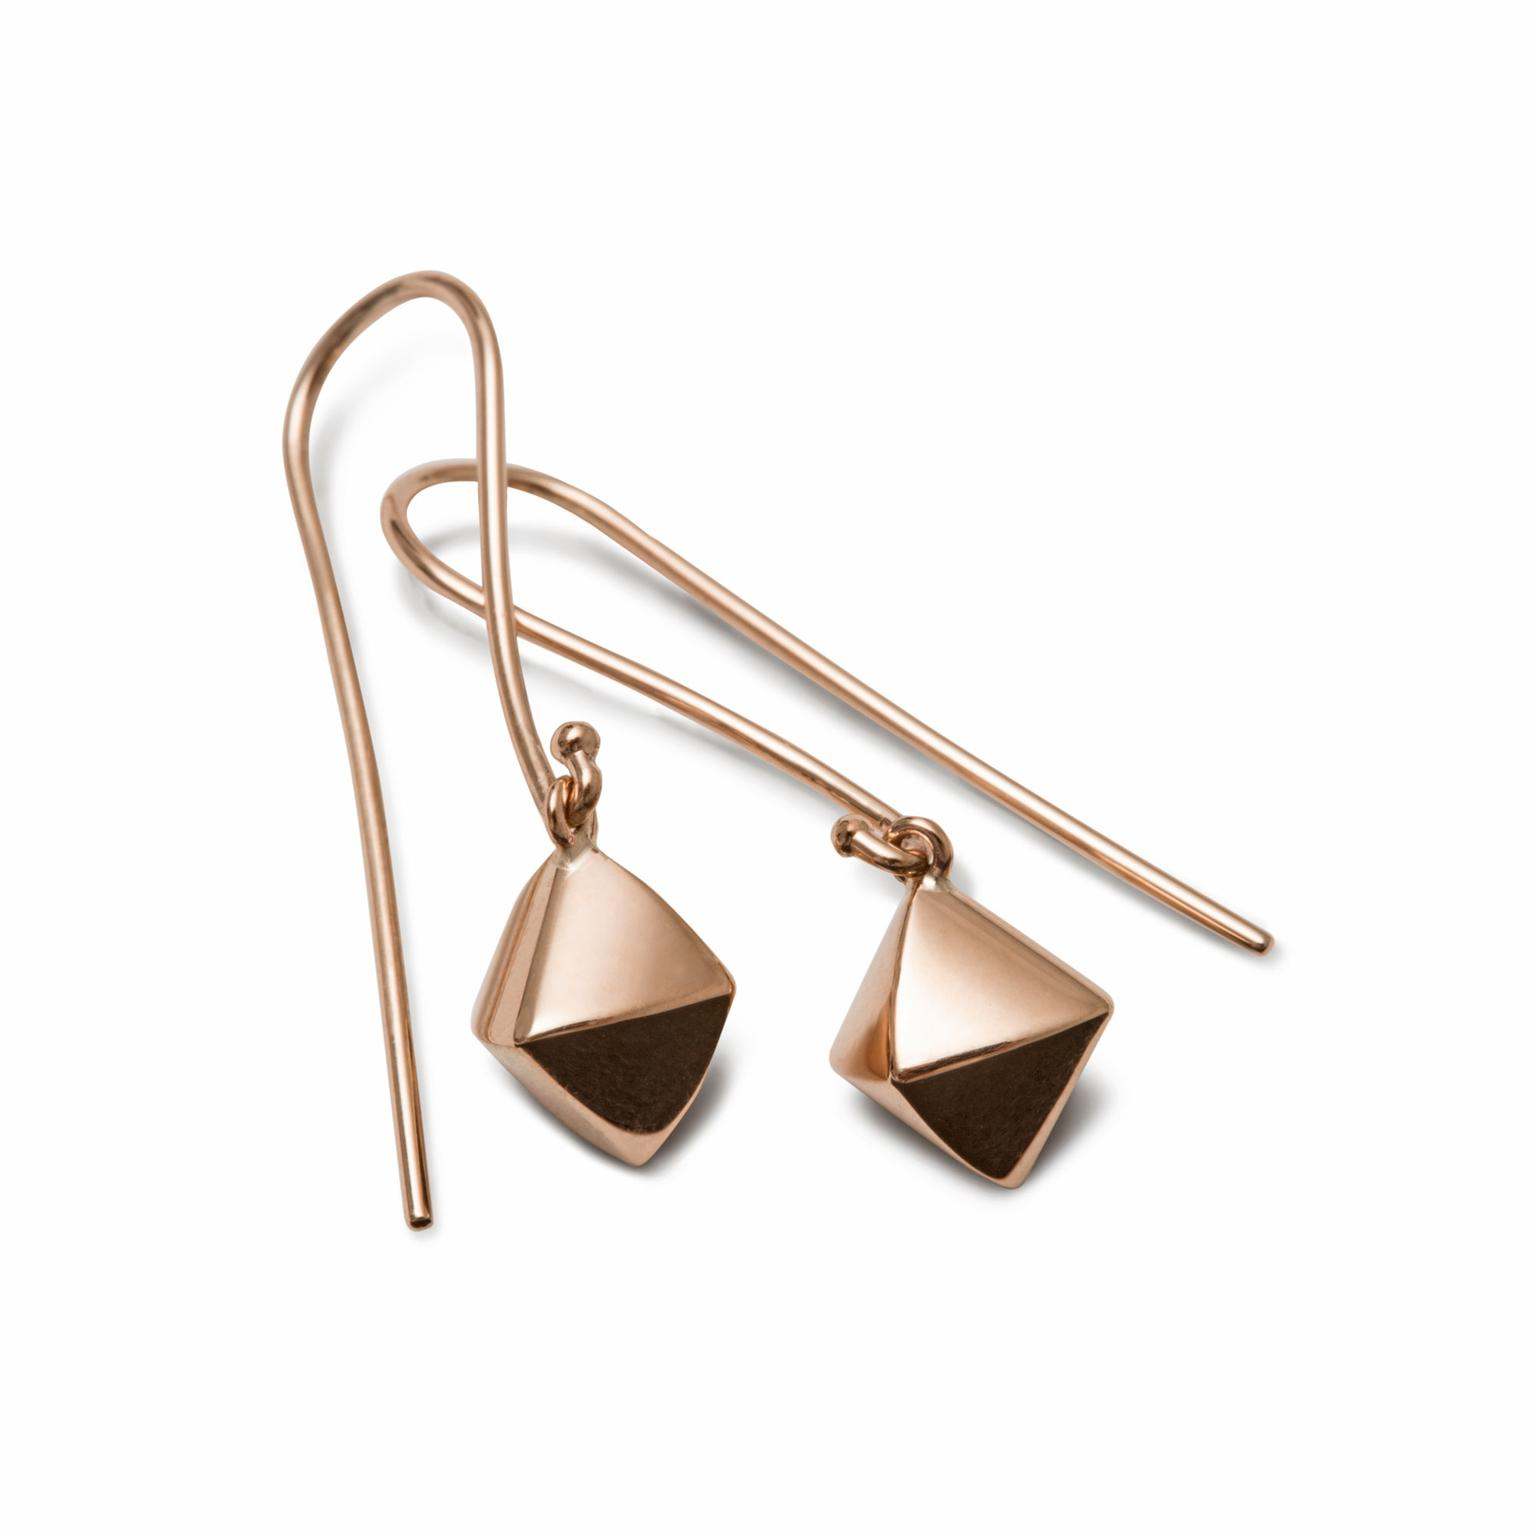 Nana Fink Adorée red gold geometric earrings